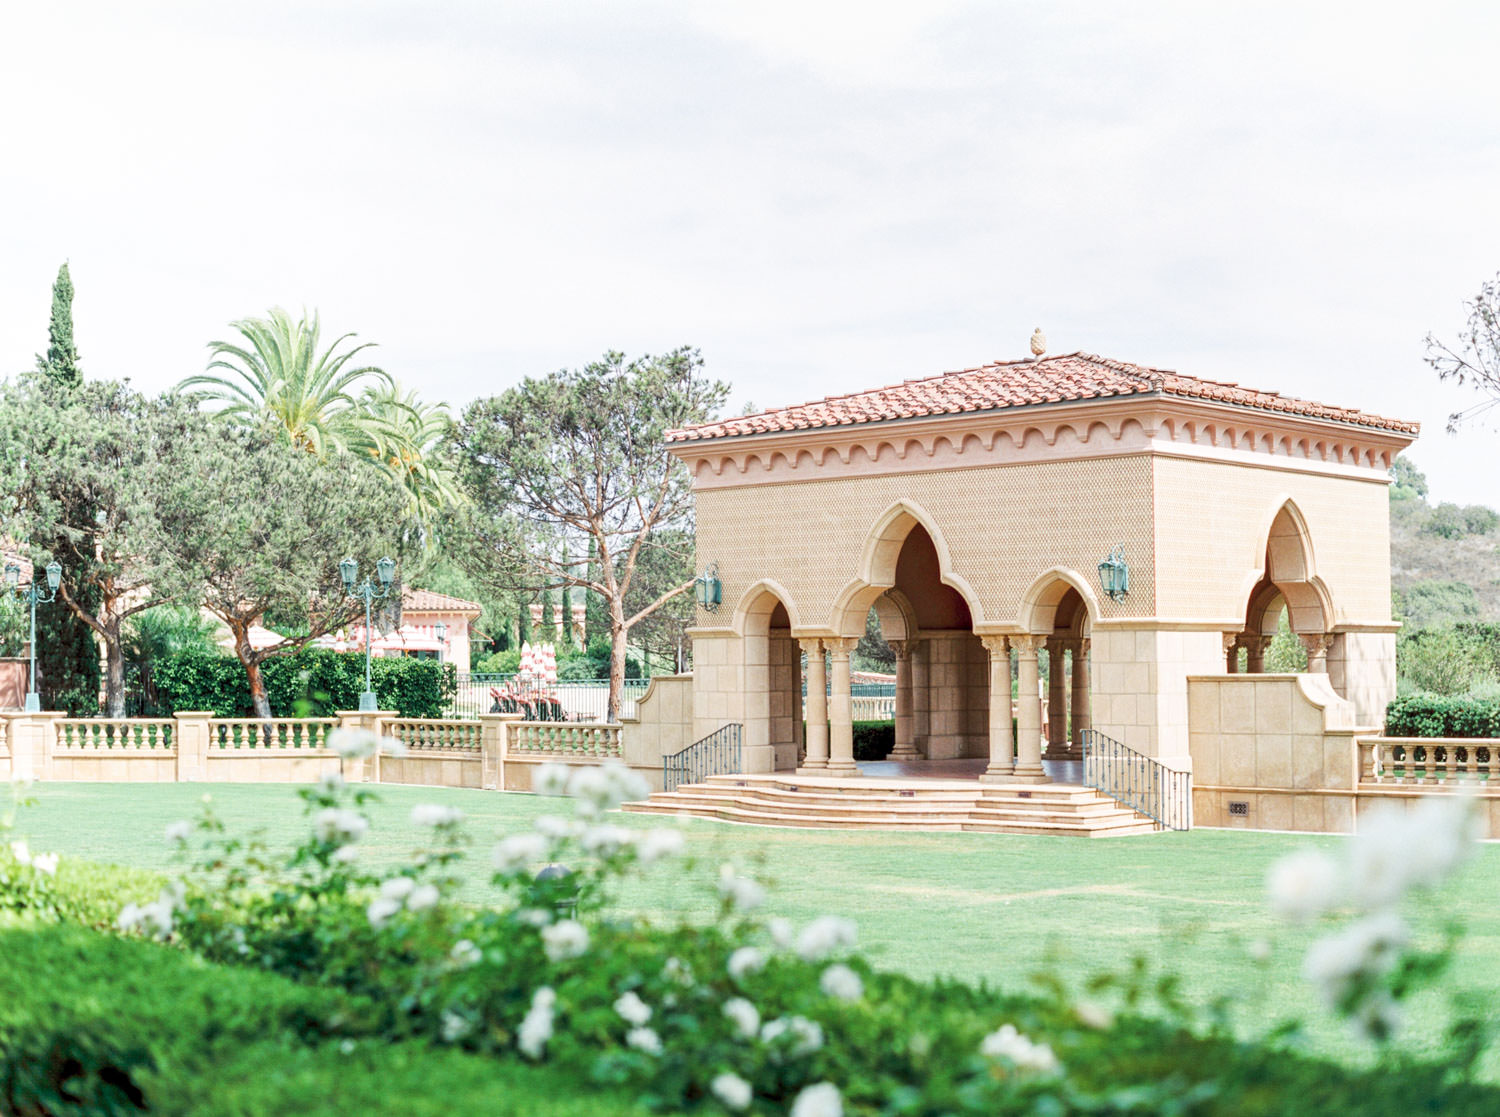 Pavilion at Aria Lawn, Weddings at the Fairmont Grand Del Mar in San Diego, Luxury Mediterranean European inspired venue, film by Cavin Elizabeth Photography